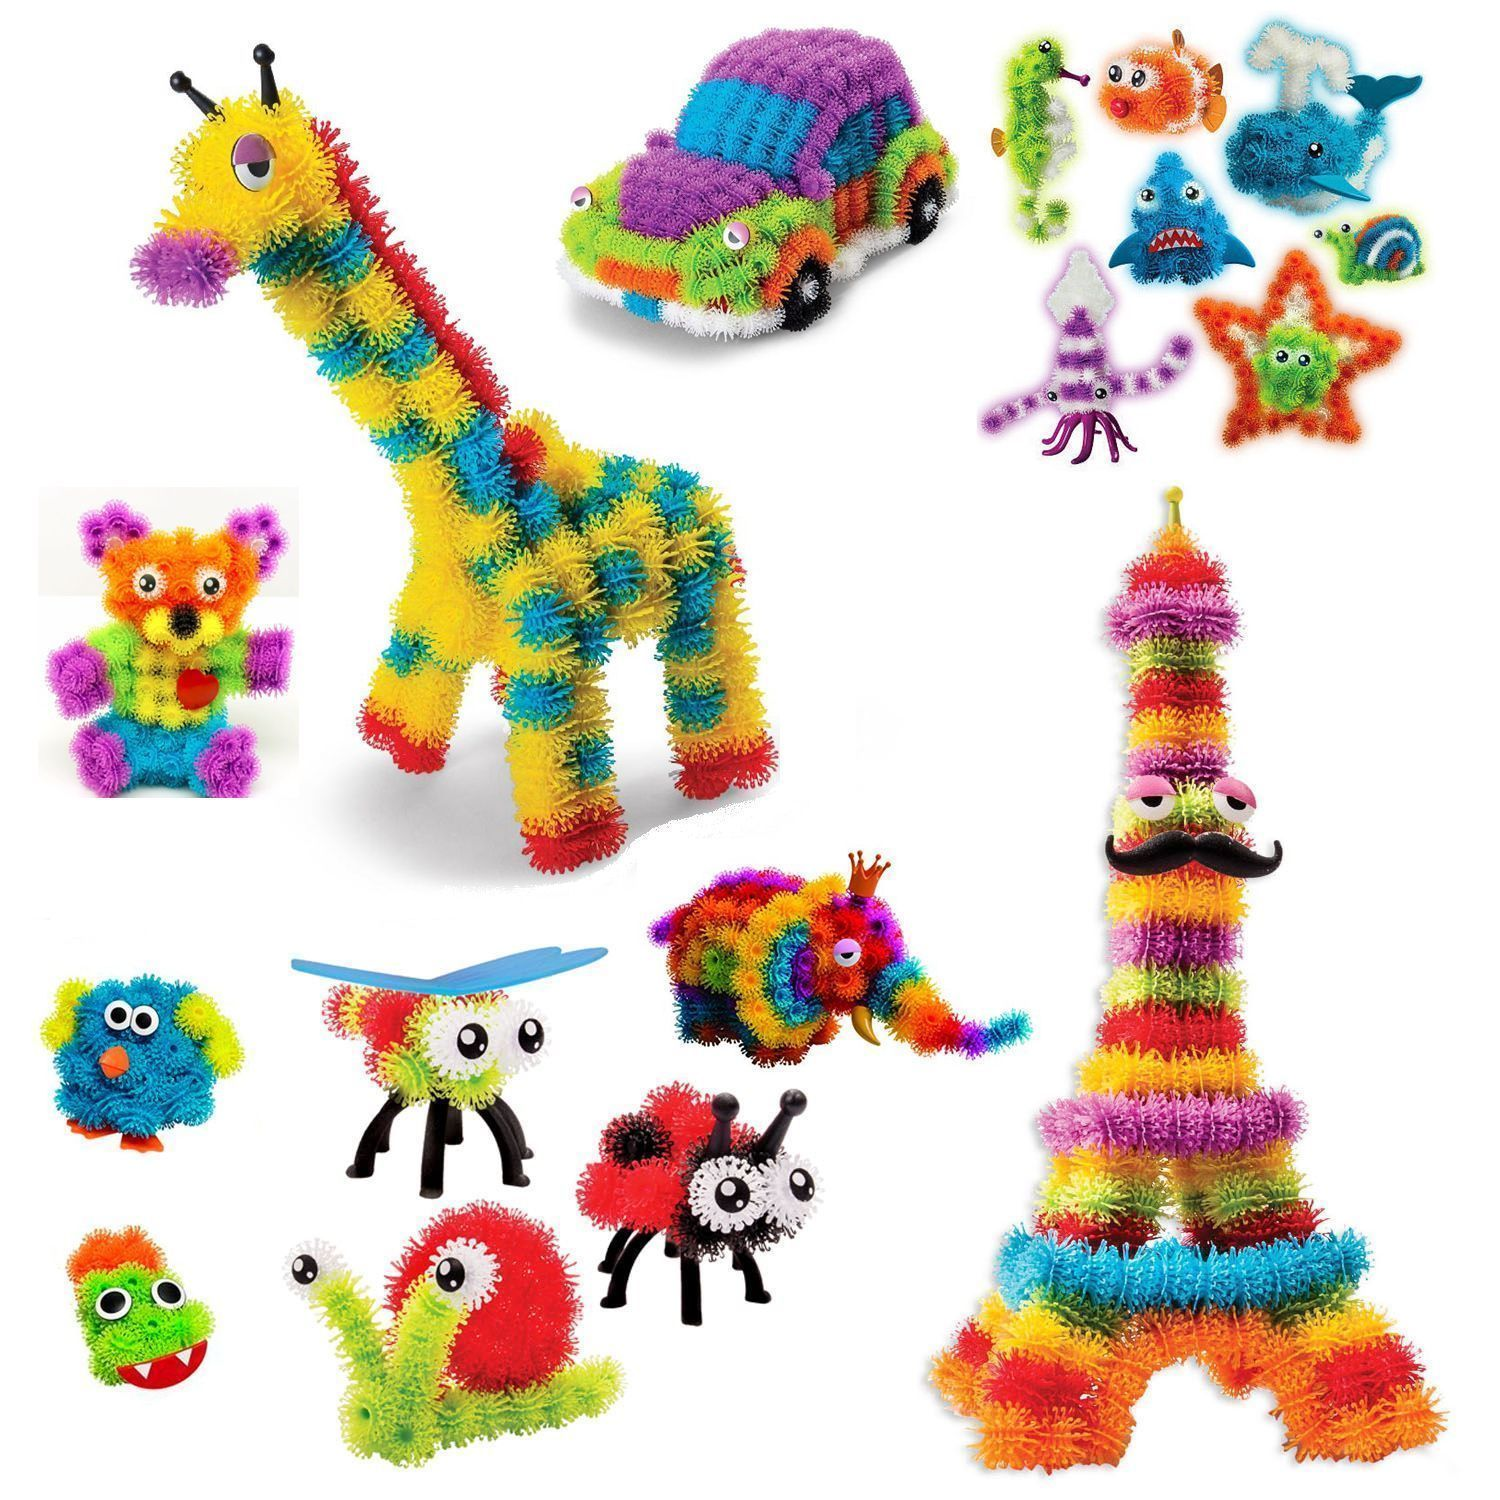 400 Bunches mega pack toy xmas festival kids children birthday